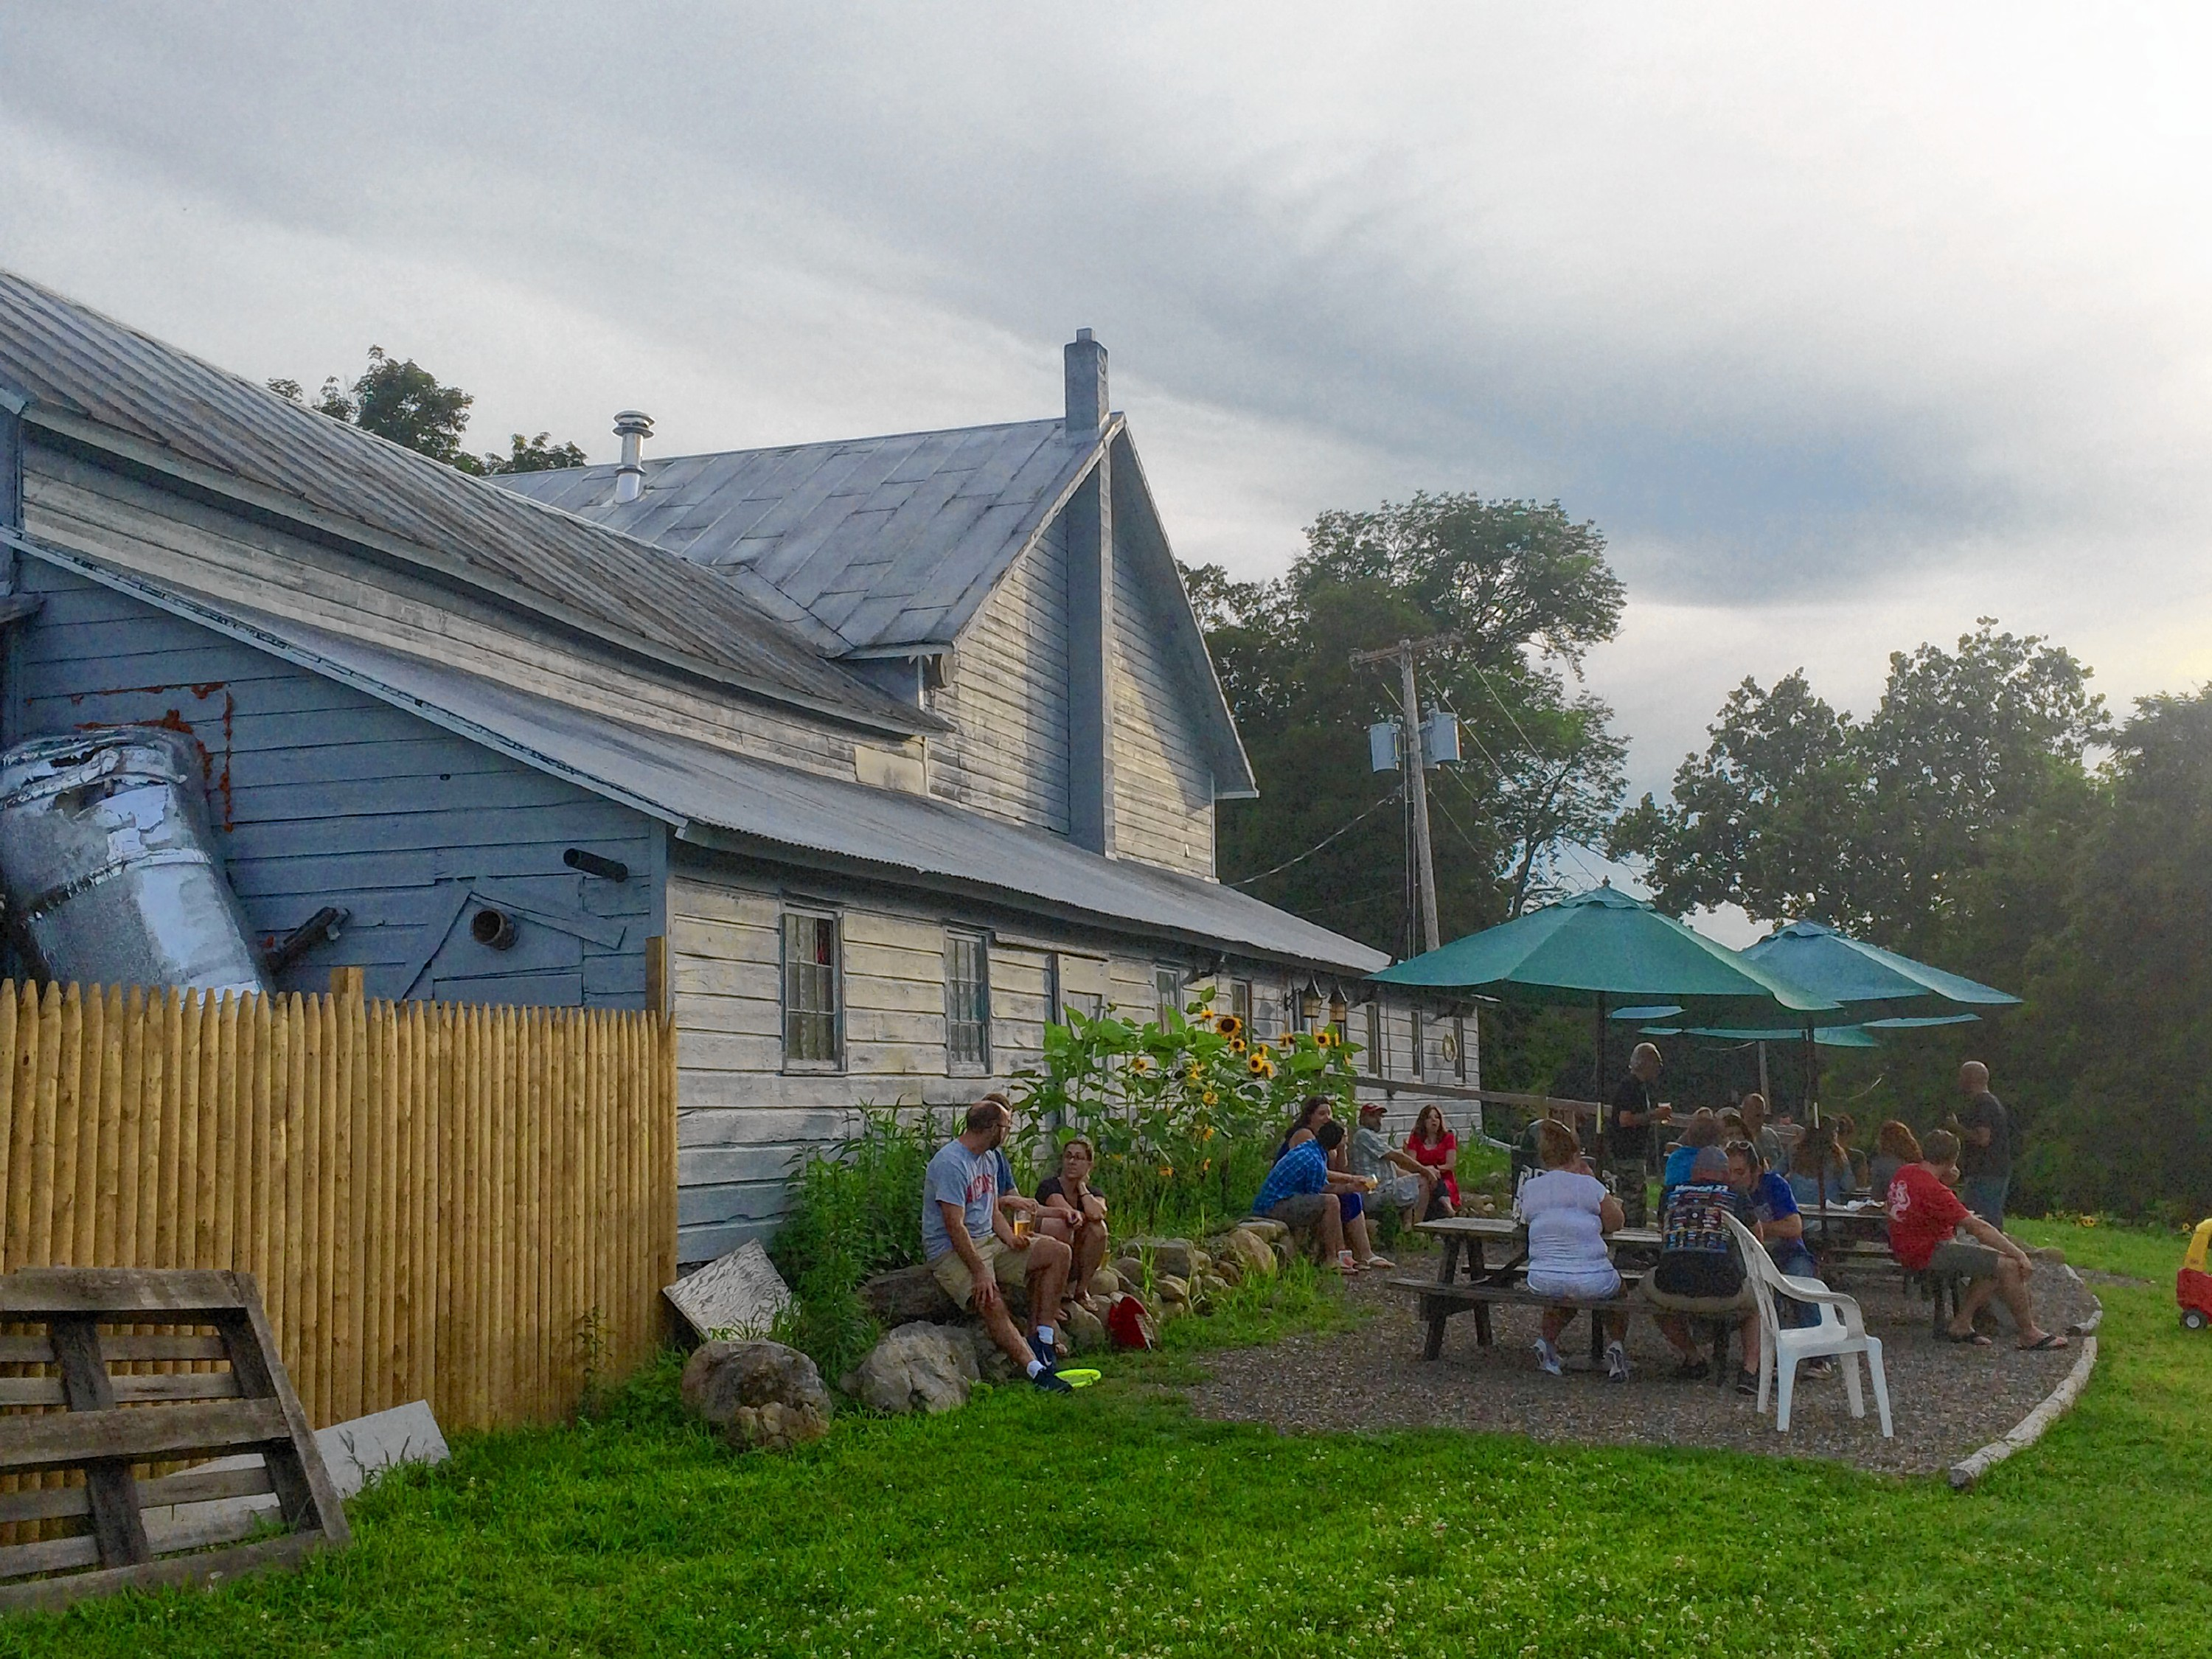 Beerhunter Roadtrip The Hudson Valley Utter Buzz Fix Delta Monitor Shower Faucet 800x800jpg Apps Directories Vibe At Sloop Brewing Co Just Five Minutes Down Road In Elizaville New York Is Less Formal Now Operates Out Of Vosburgh Orchards A Move